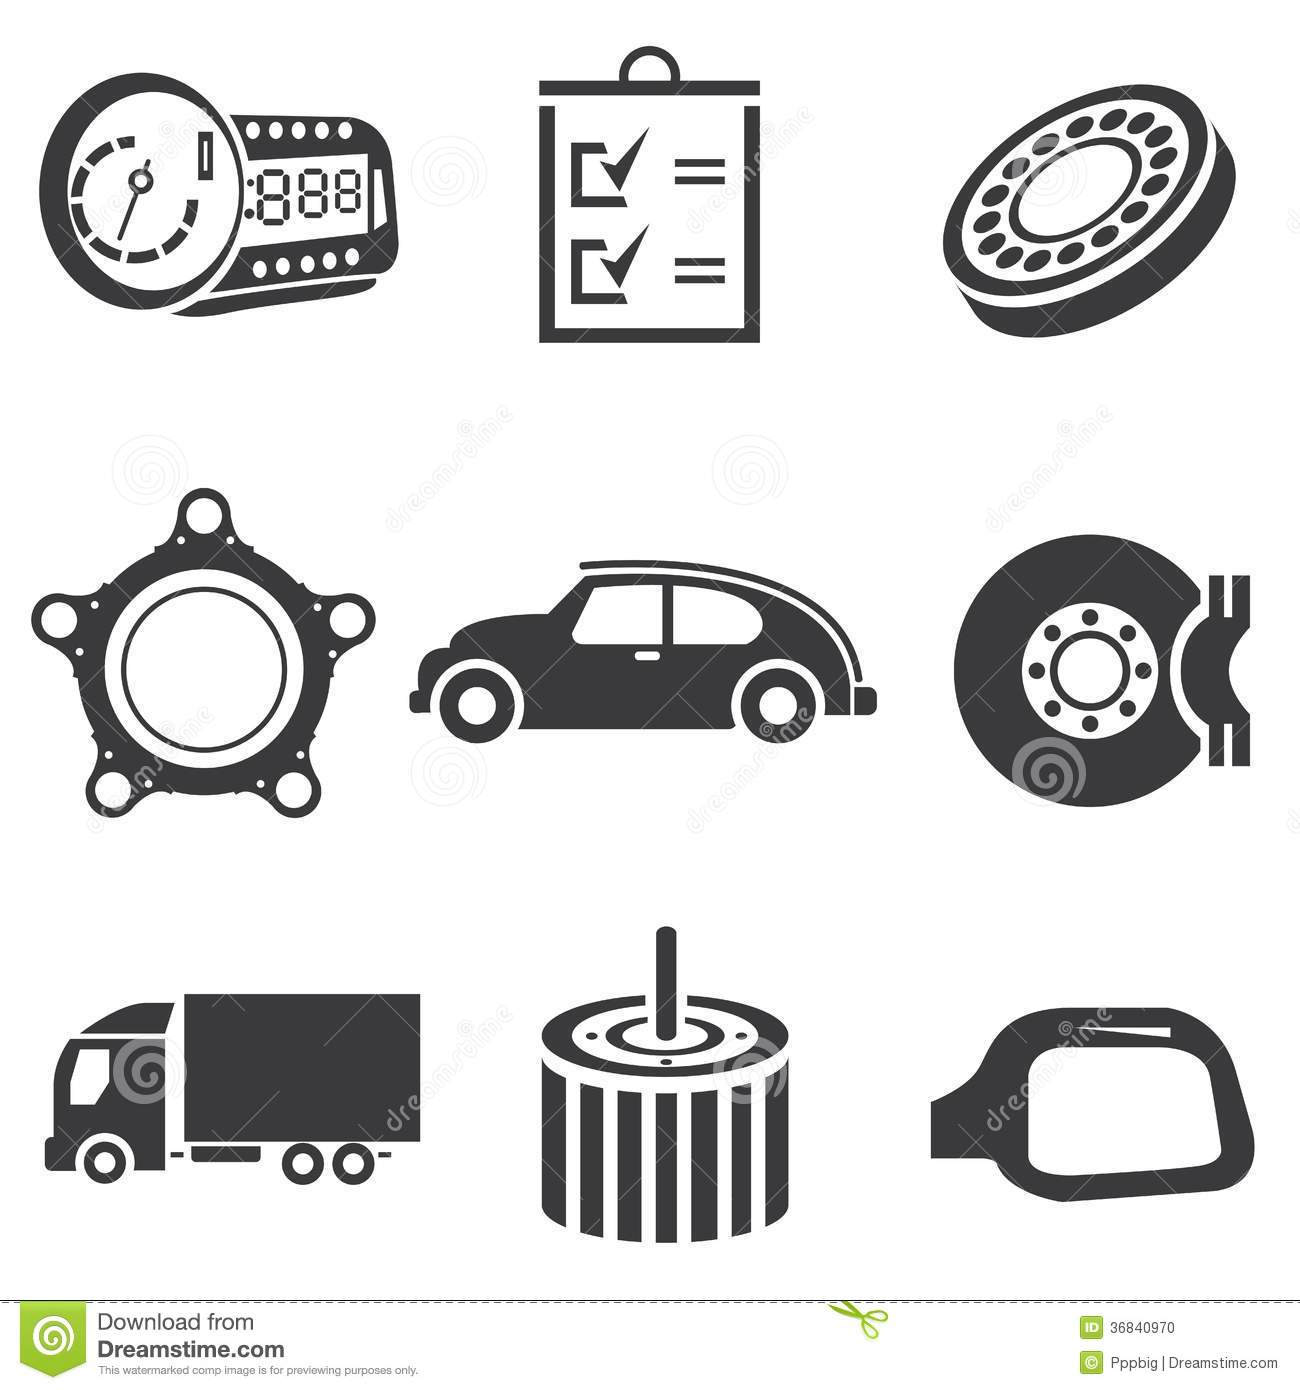 14 icon automotive parts images car parts icon icon auto parts